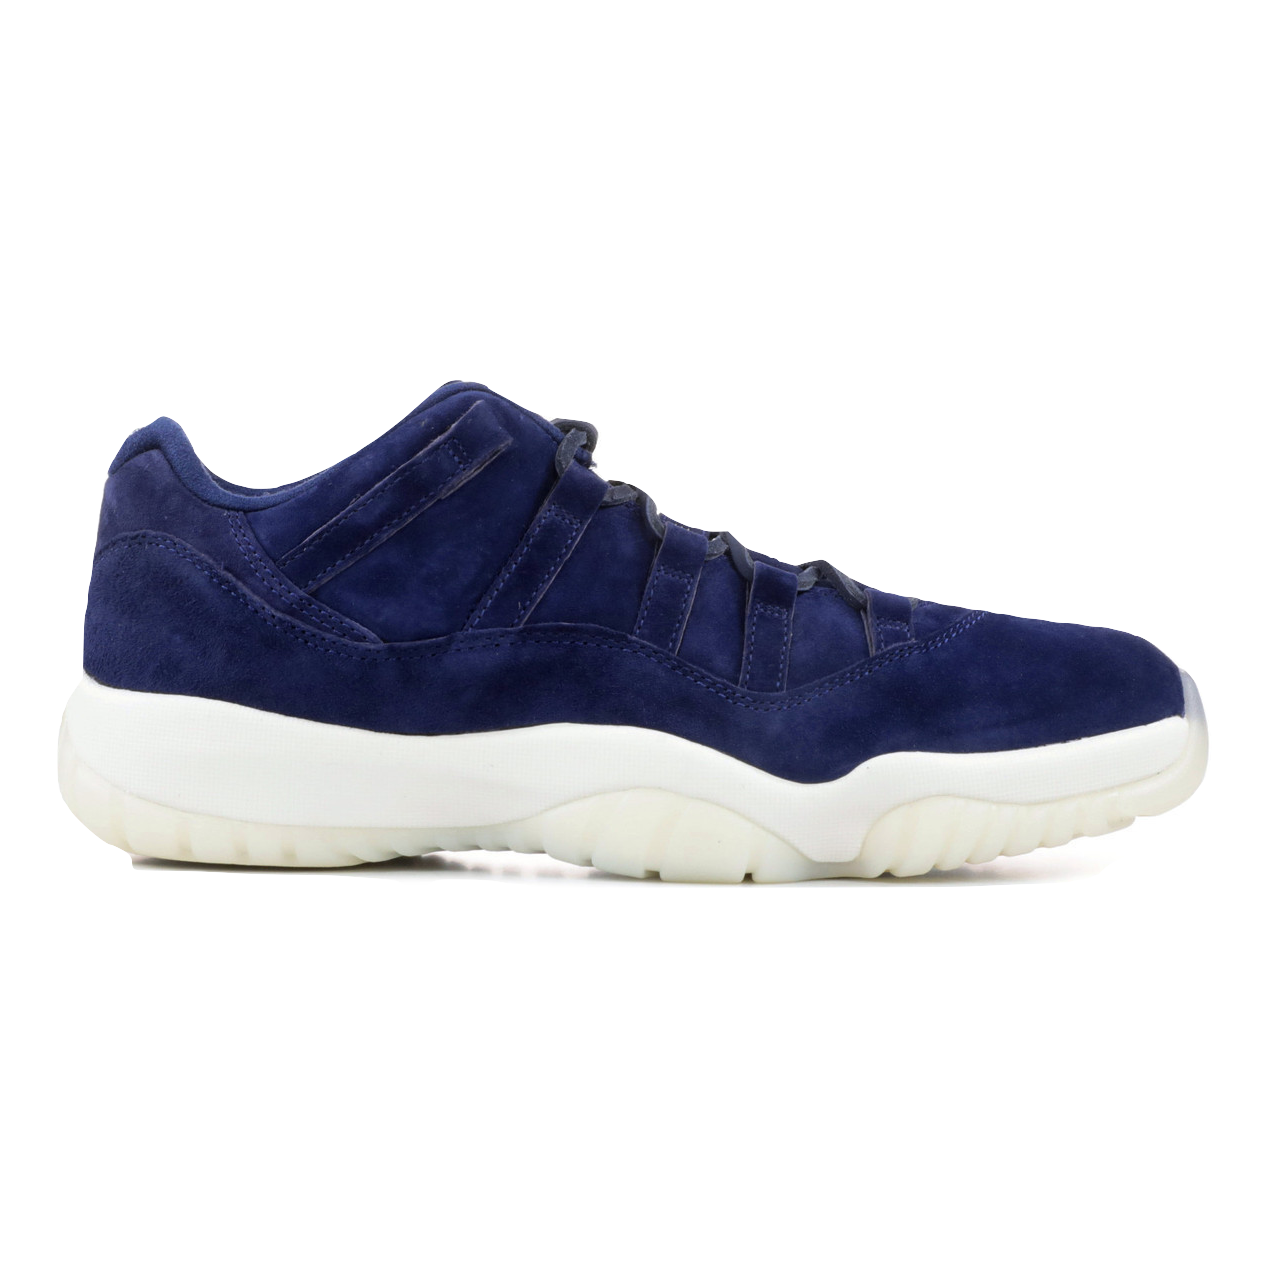 Air Jordan 11 Retro Low - Jeter